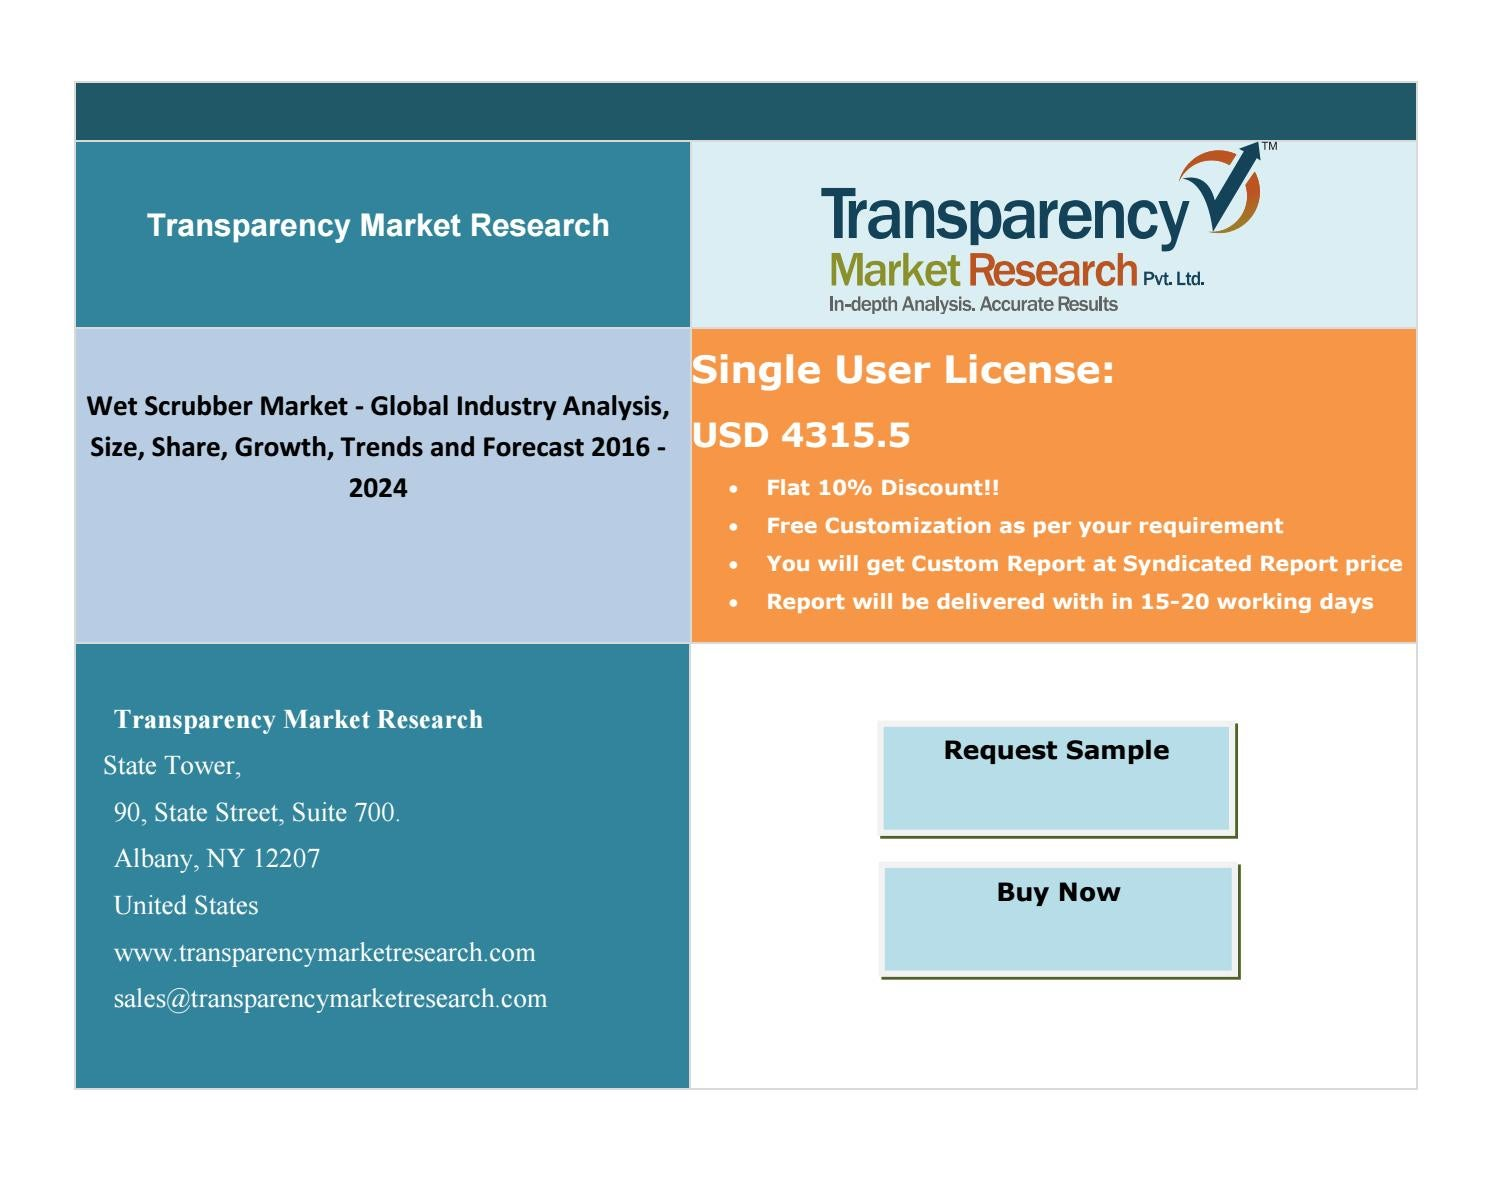 Wet Scrubber Market - Global Industry Analysis, Size, Share